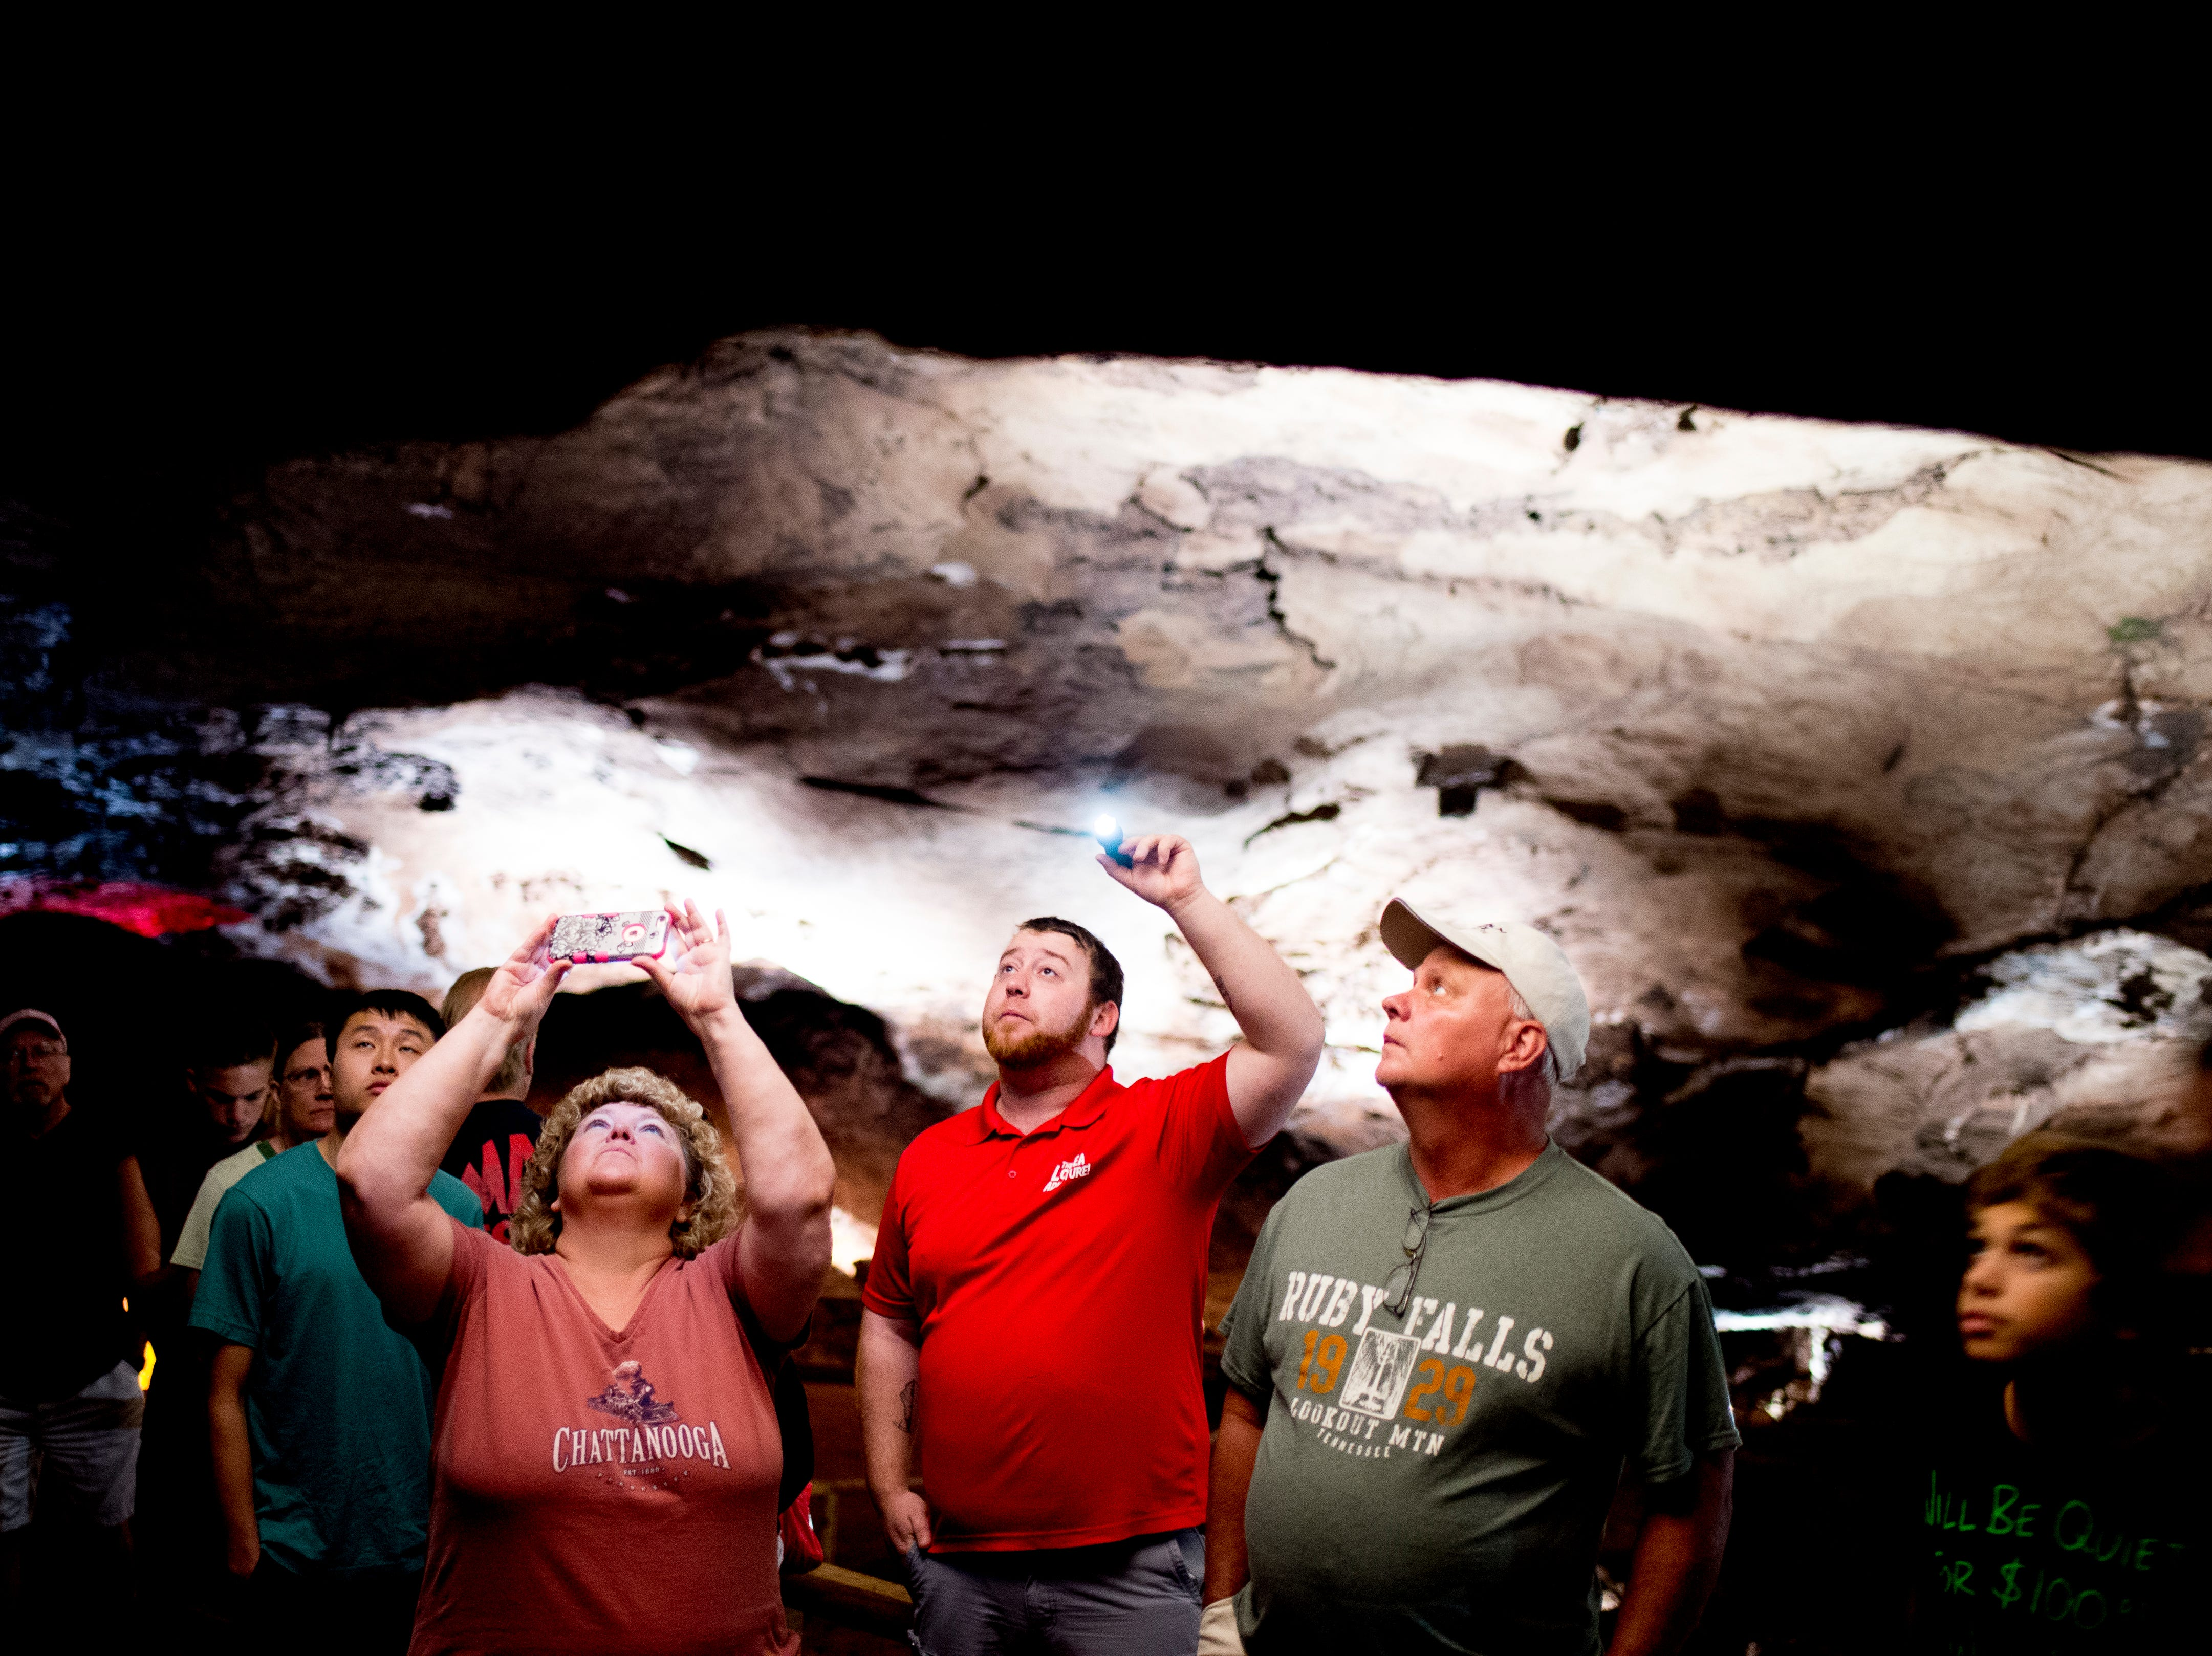 Tour guide Cody Isbill points out Òanthodites,Ó fragile, spiky clusters commonly known as Òcave flowersÓ only found in few caves around the world at the Lost Sea Adventure underground cave attraction outside of Sweetwater, Tennessee on Wednesday, August 15, 2018. The cave system dates back some 20,000 years and today features points of interests like an old moonshine still, rock formations, Confederate Army graffiti and the popular boat ride in a natural lake stocked with 200 rainbow trout.